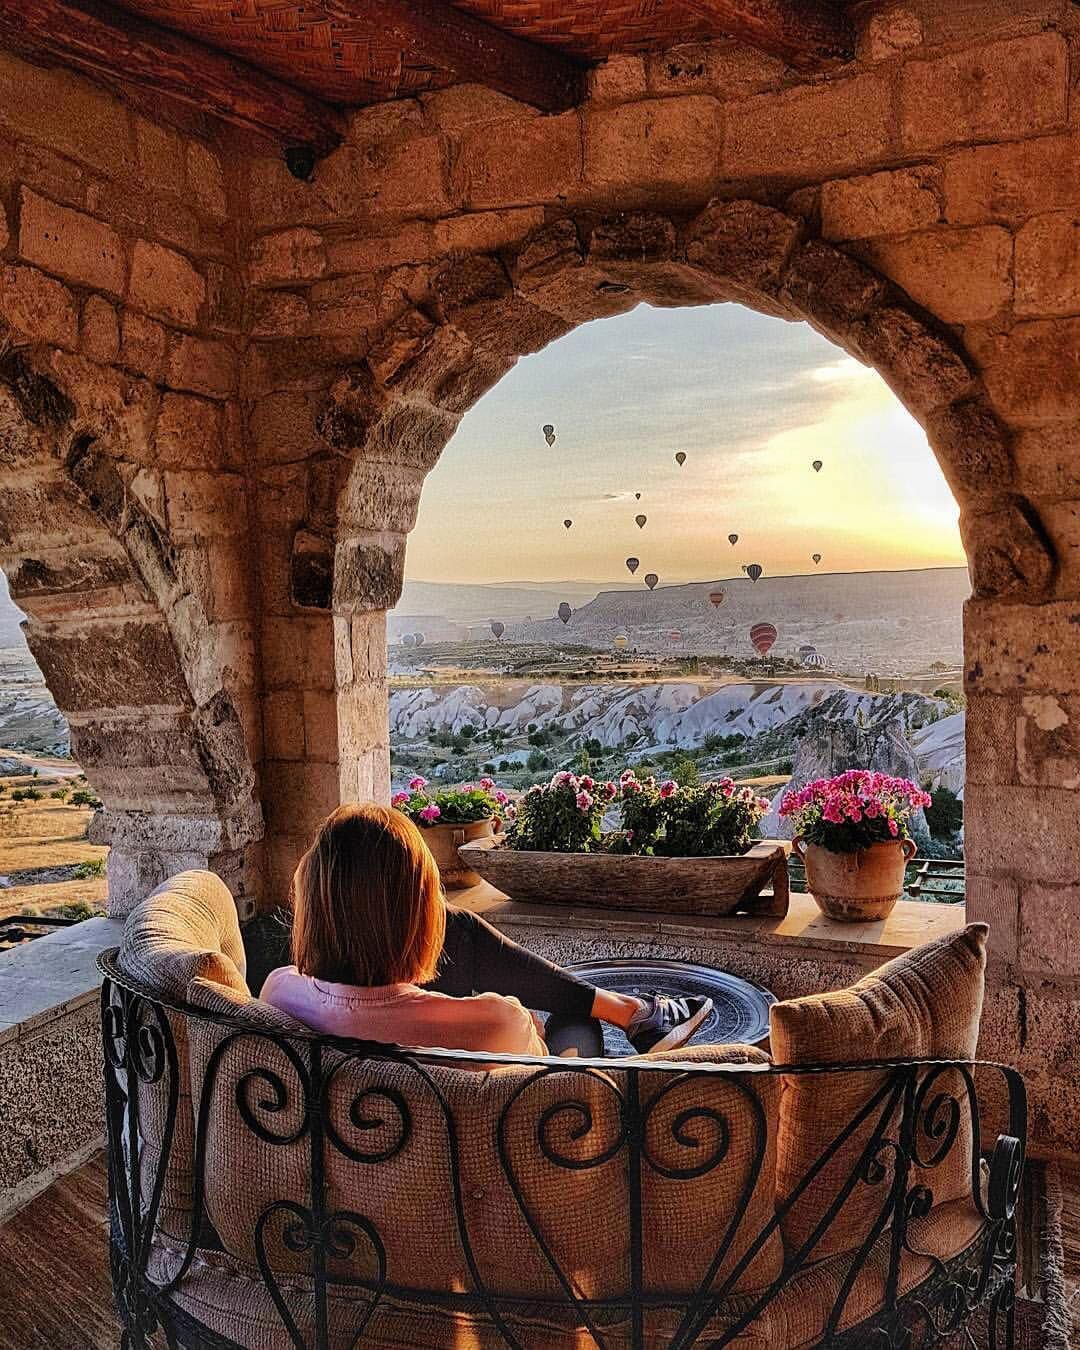 1 678 Begenme 14 Yorum Instagram Da Museum Hotel Museumhotel A Remarkable Way Of Watching The Sunrise Www Museumho Museum Hotel Cappadocia Places